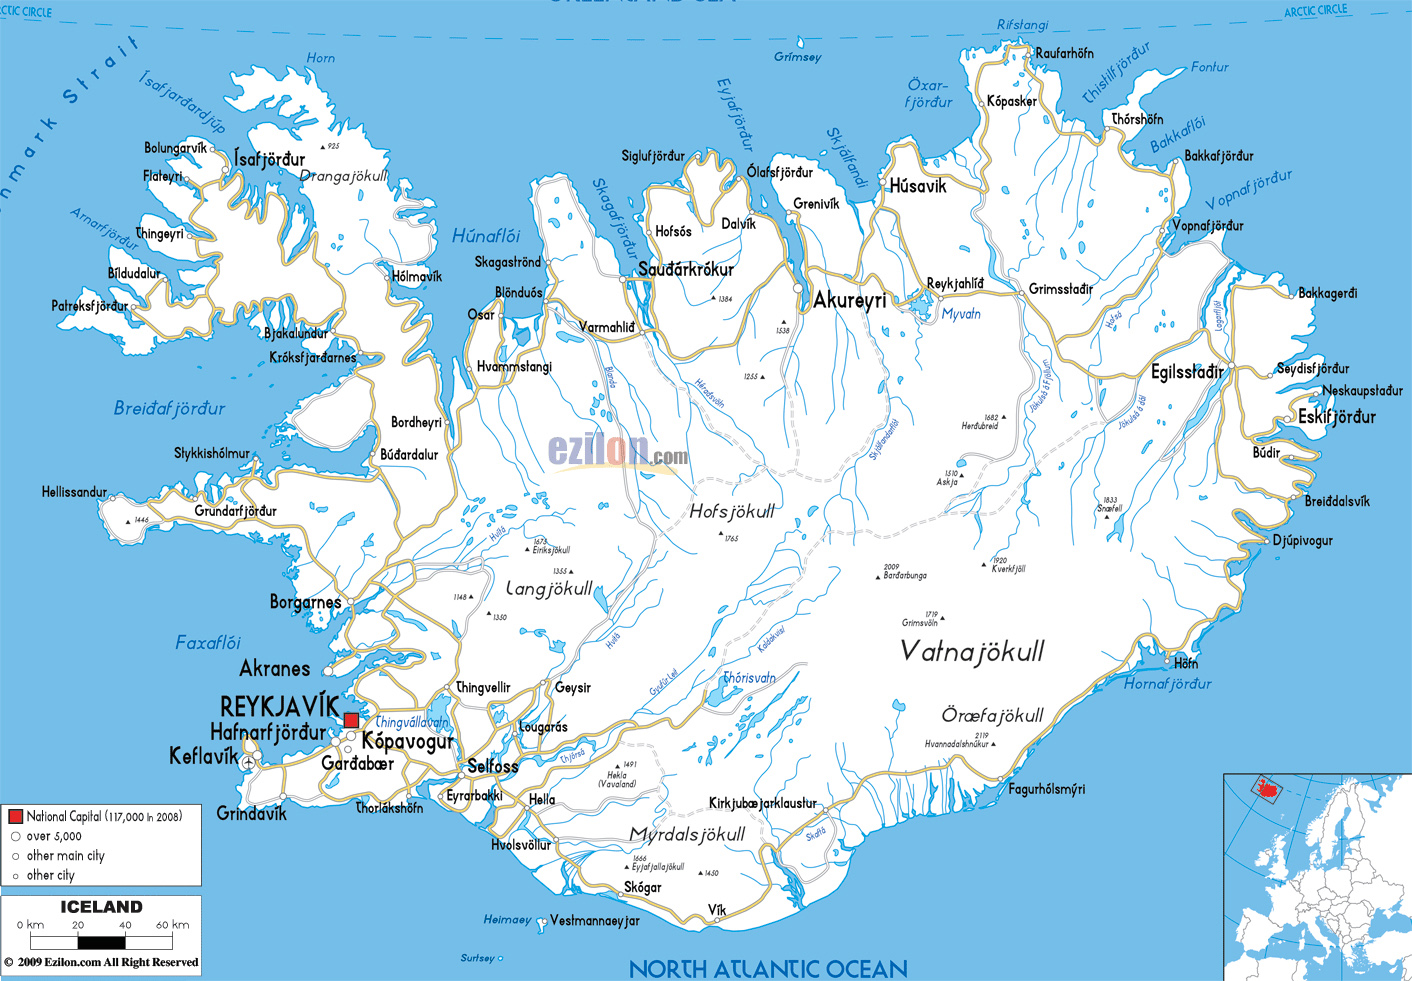 Maps of Iceland | Detailed map of Iceland in English |Tourist map of Iceland Road Map Pdf on honduras road map pdf, switzerland road map pdf, new zealand road map pdf, mexico road map pdf, france road map pdf, zimbabwe road map pdf, ecuador road map pdf, costa rica road map pdf,